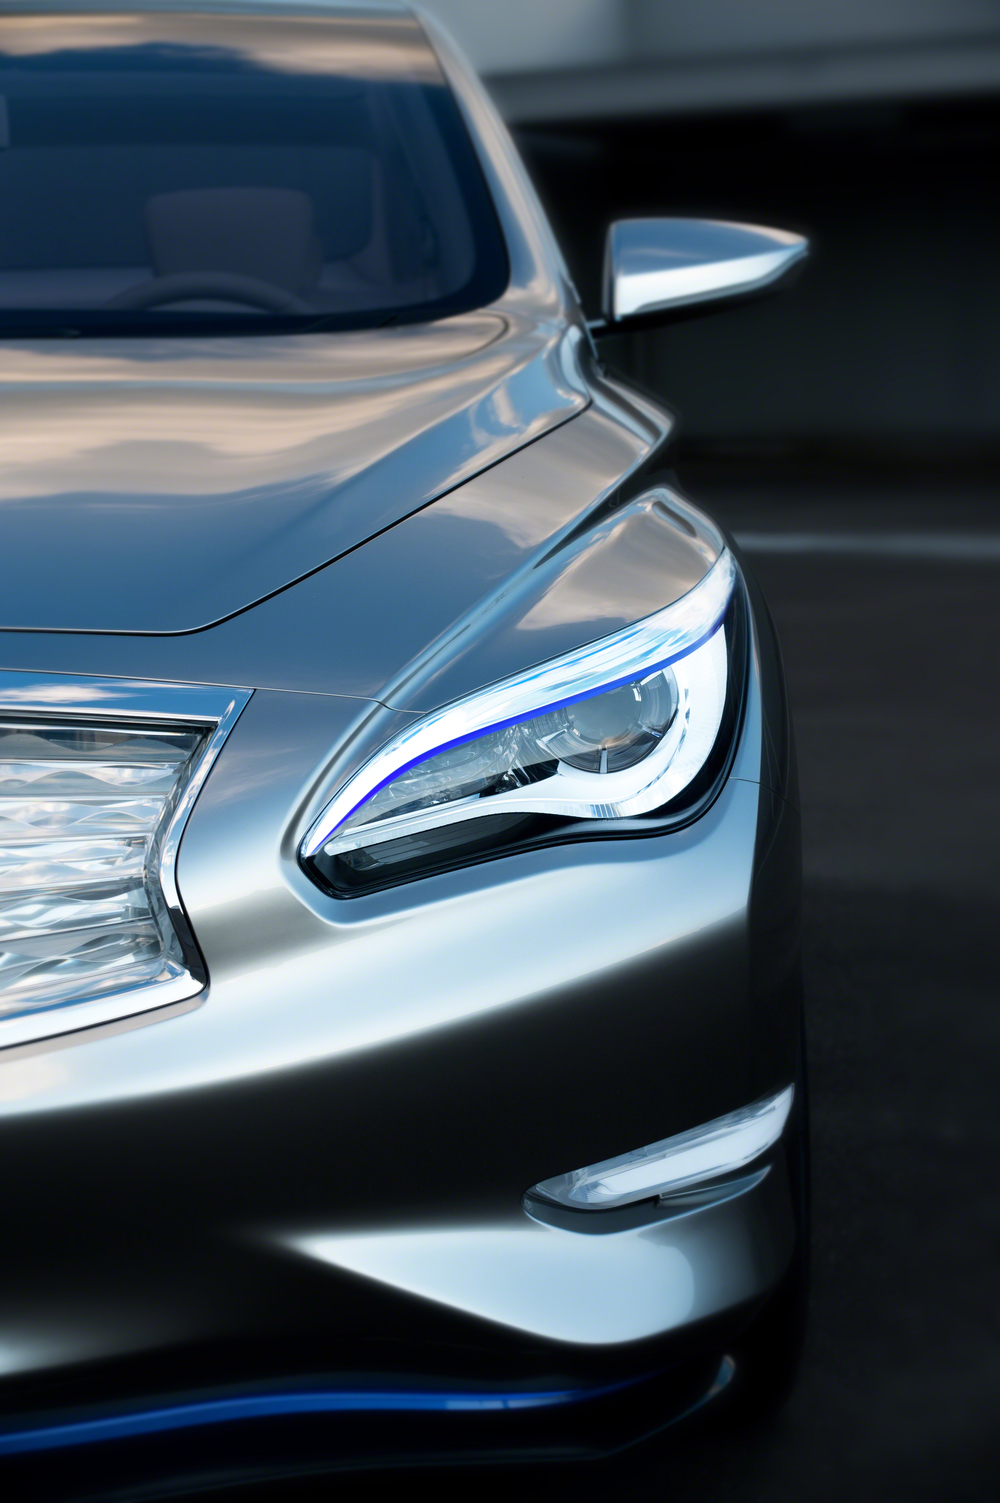 Infiniti LE All-electric prototype/concept